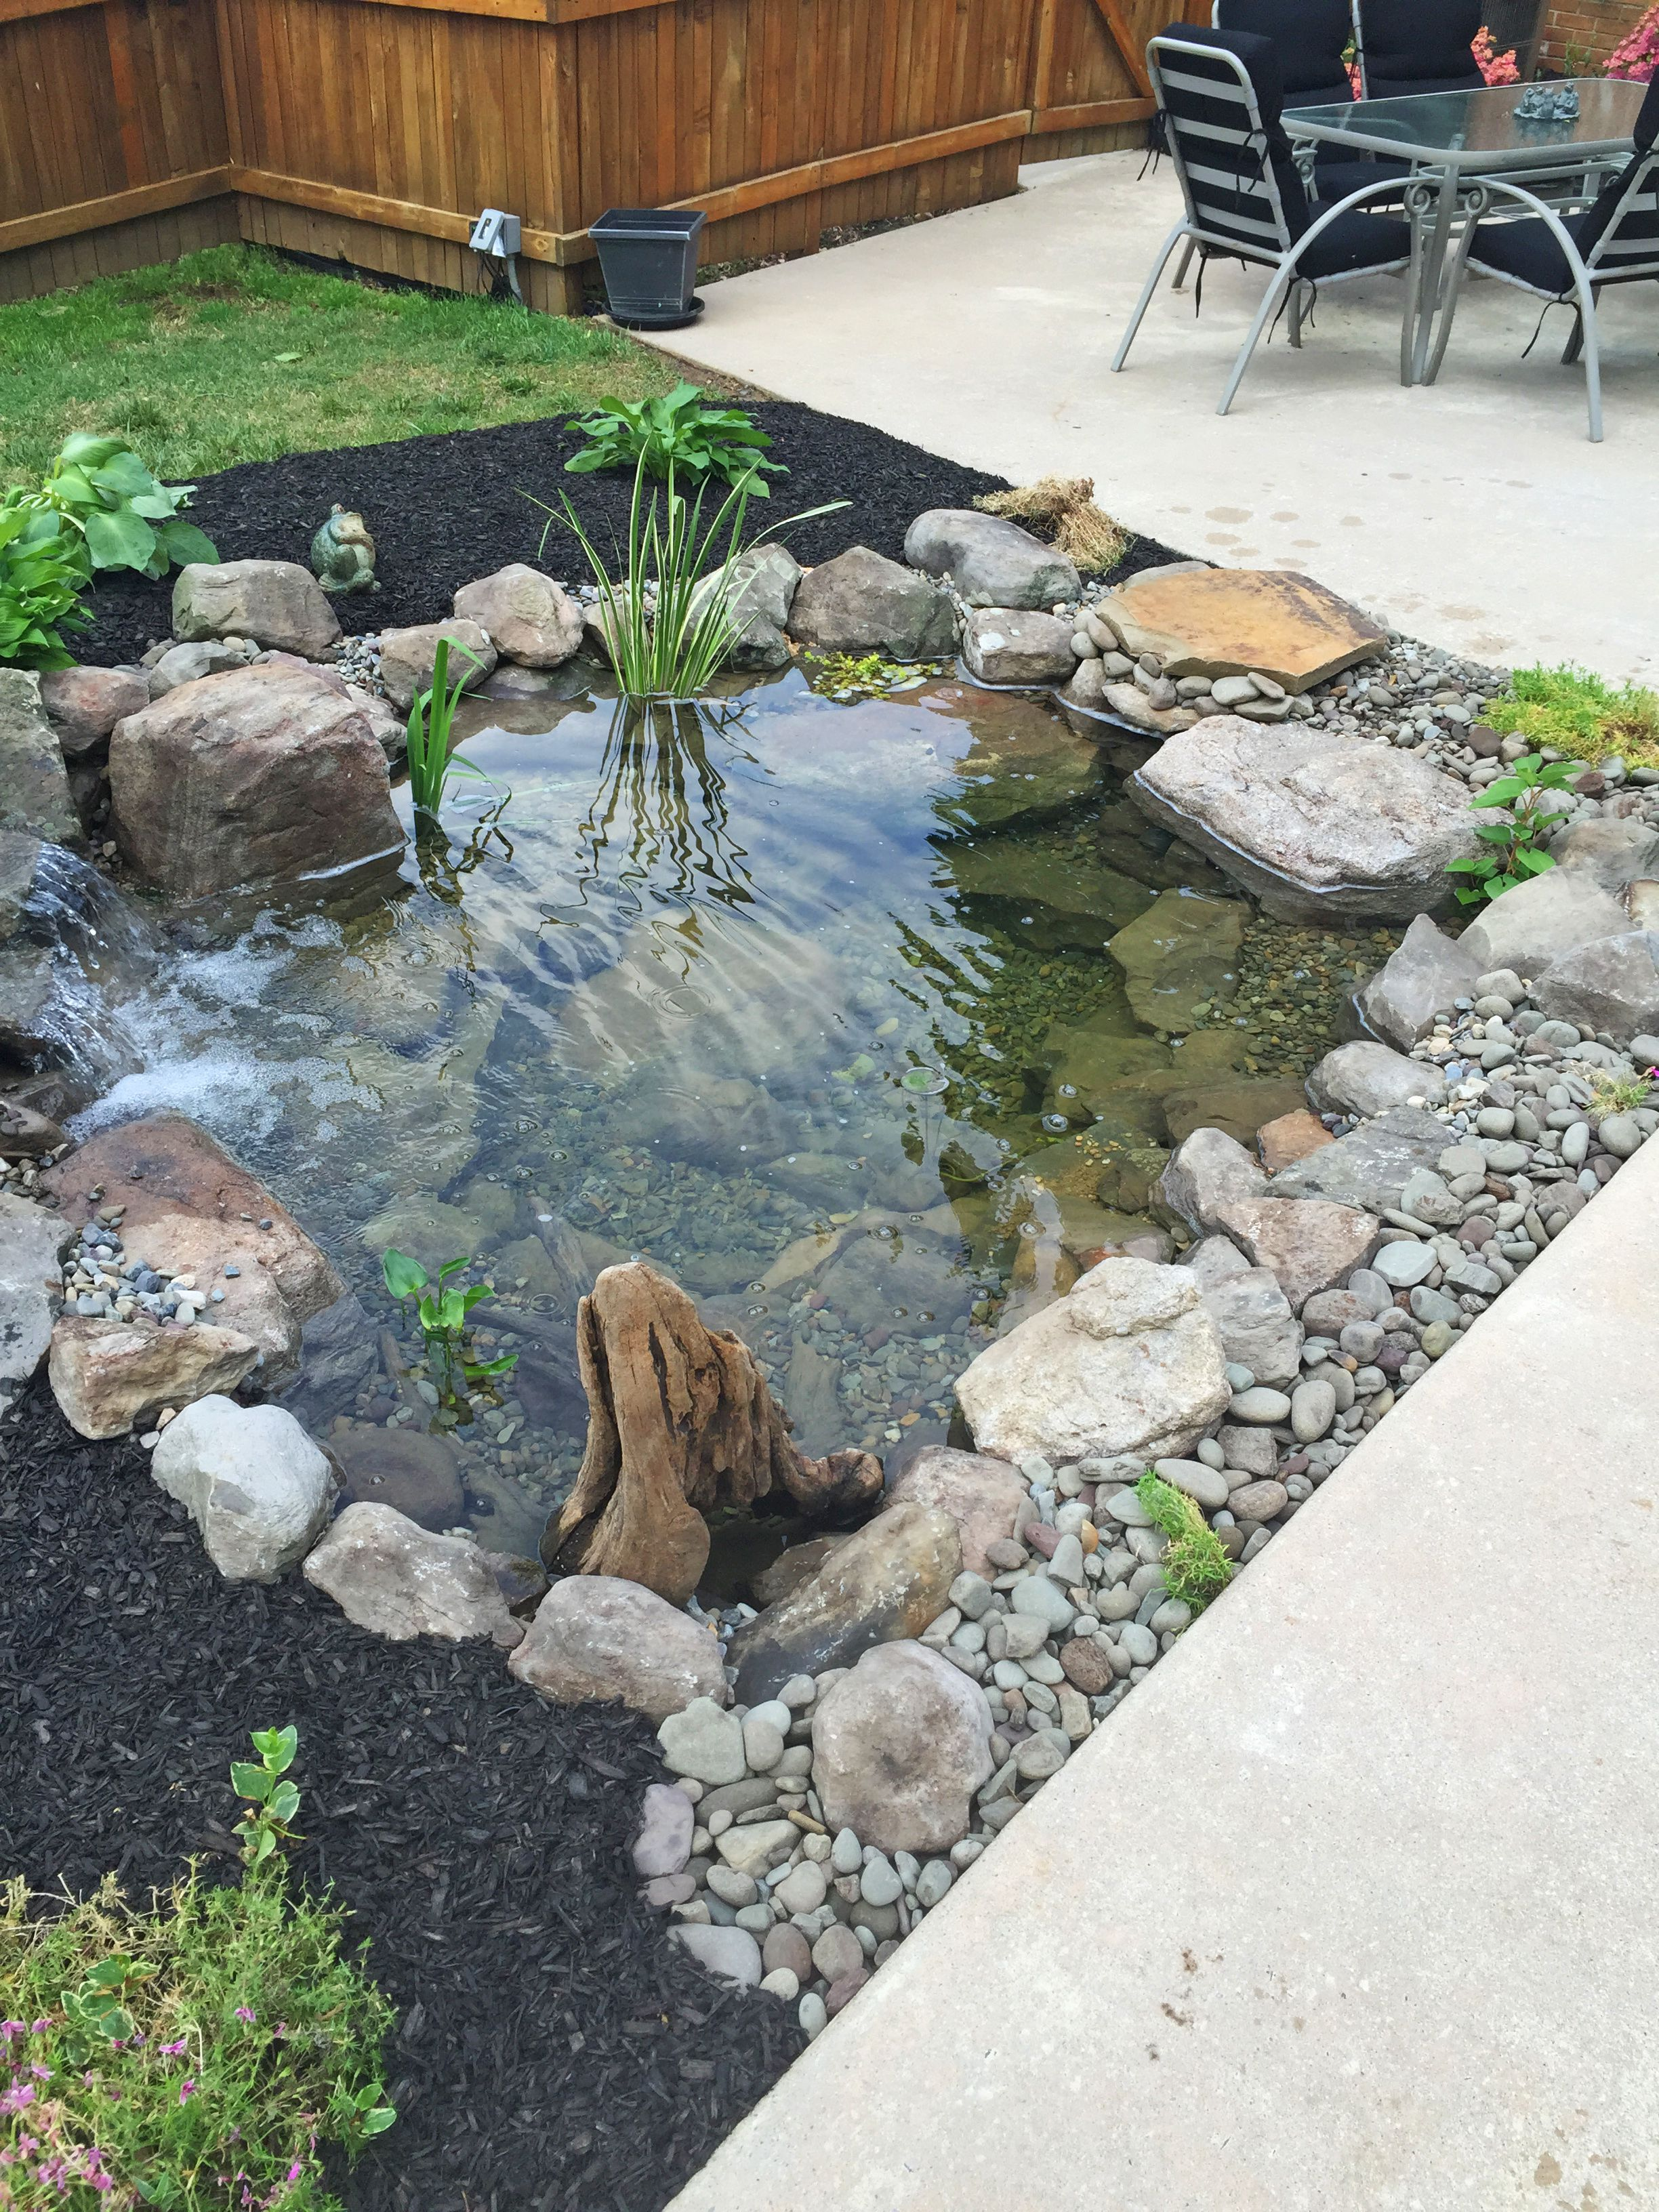 Backyard fish pond waterfall koi water garden waterscapes for Outdoor koi pond